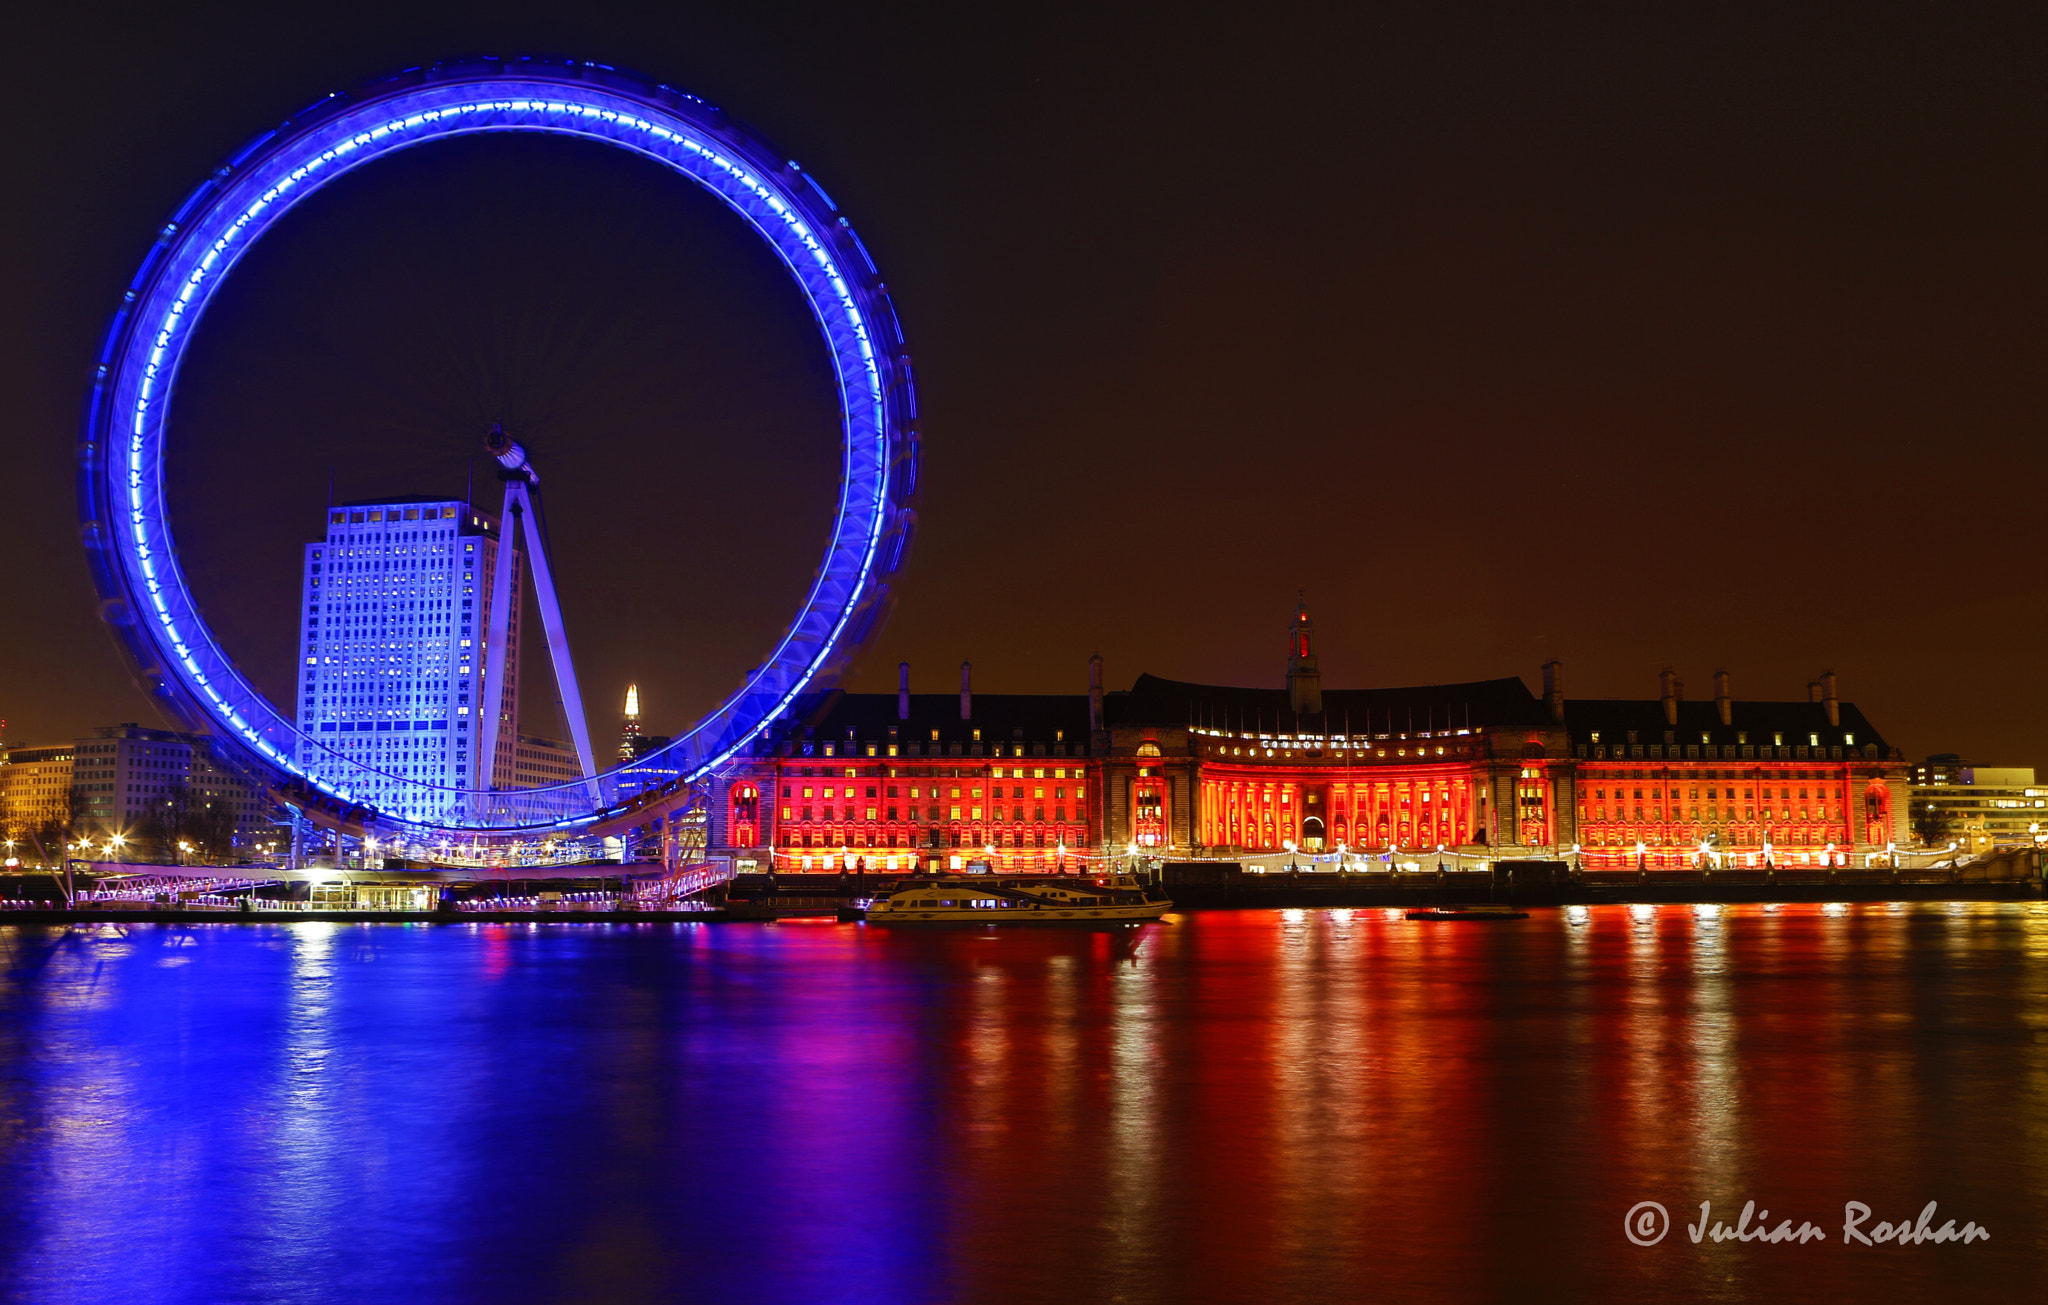 Photograph Vibrance of London at night by Julian Roshan on 500px